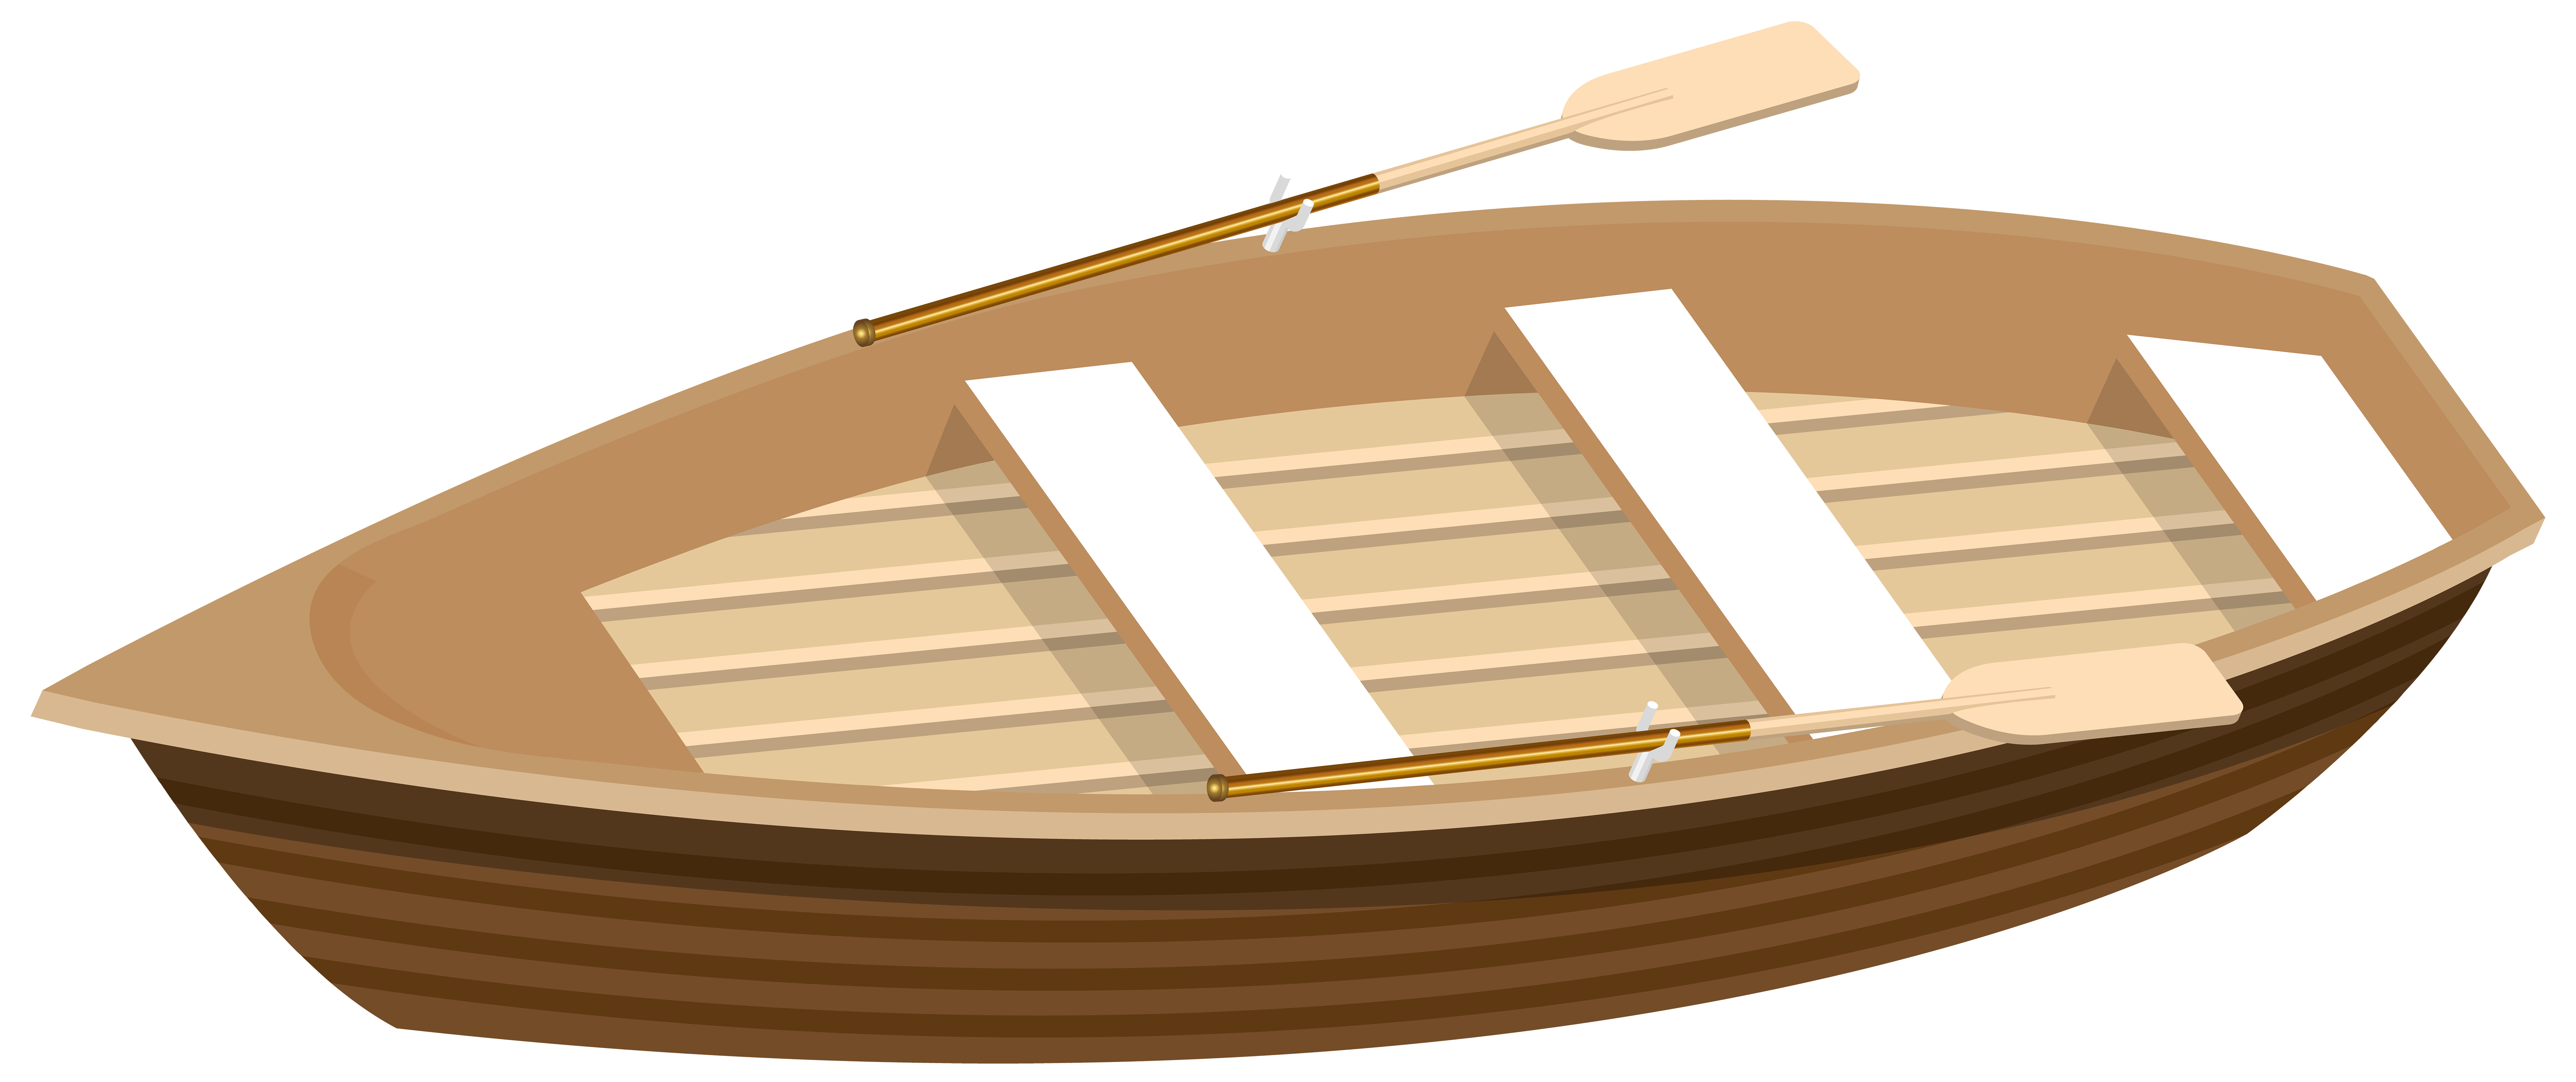 Boat png clipart vector free download Wooden Boat Transparent PNG Clip Art Image | Gallery Yopriceville ... vector free download